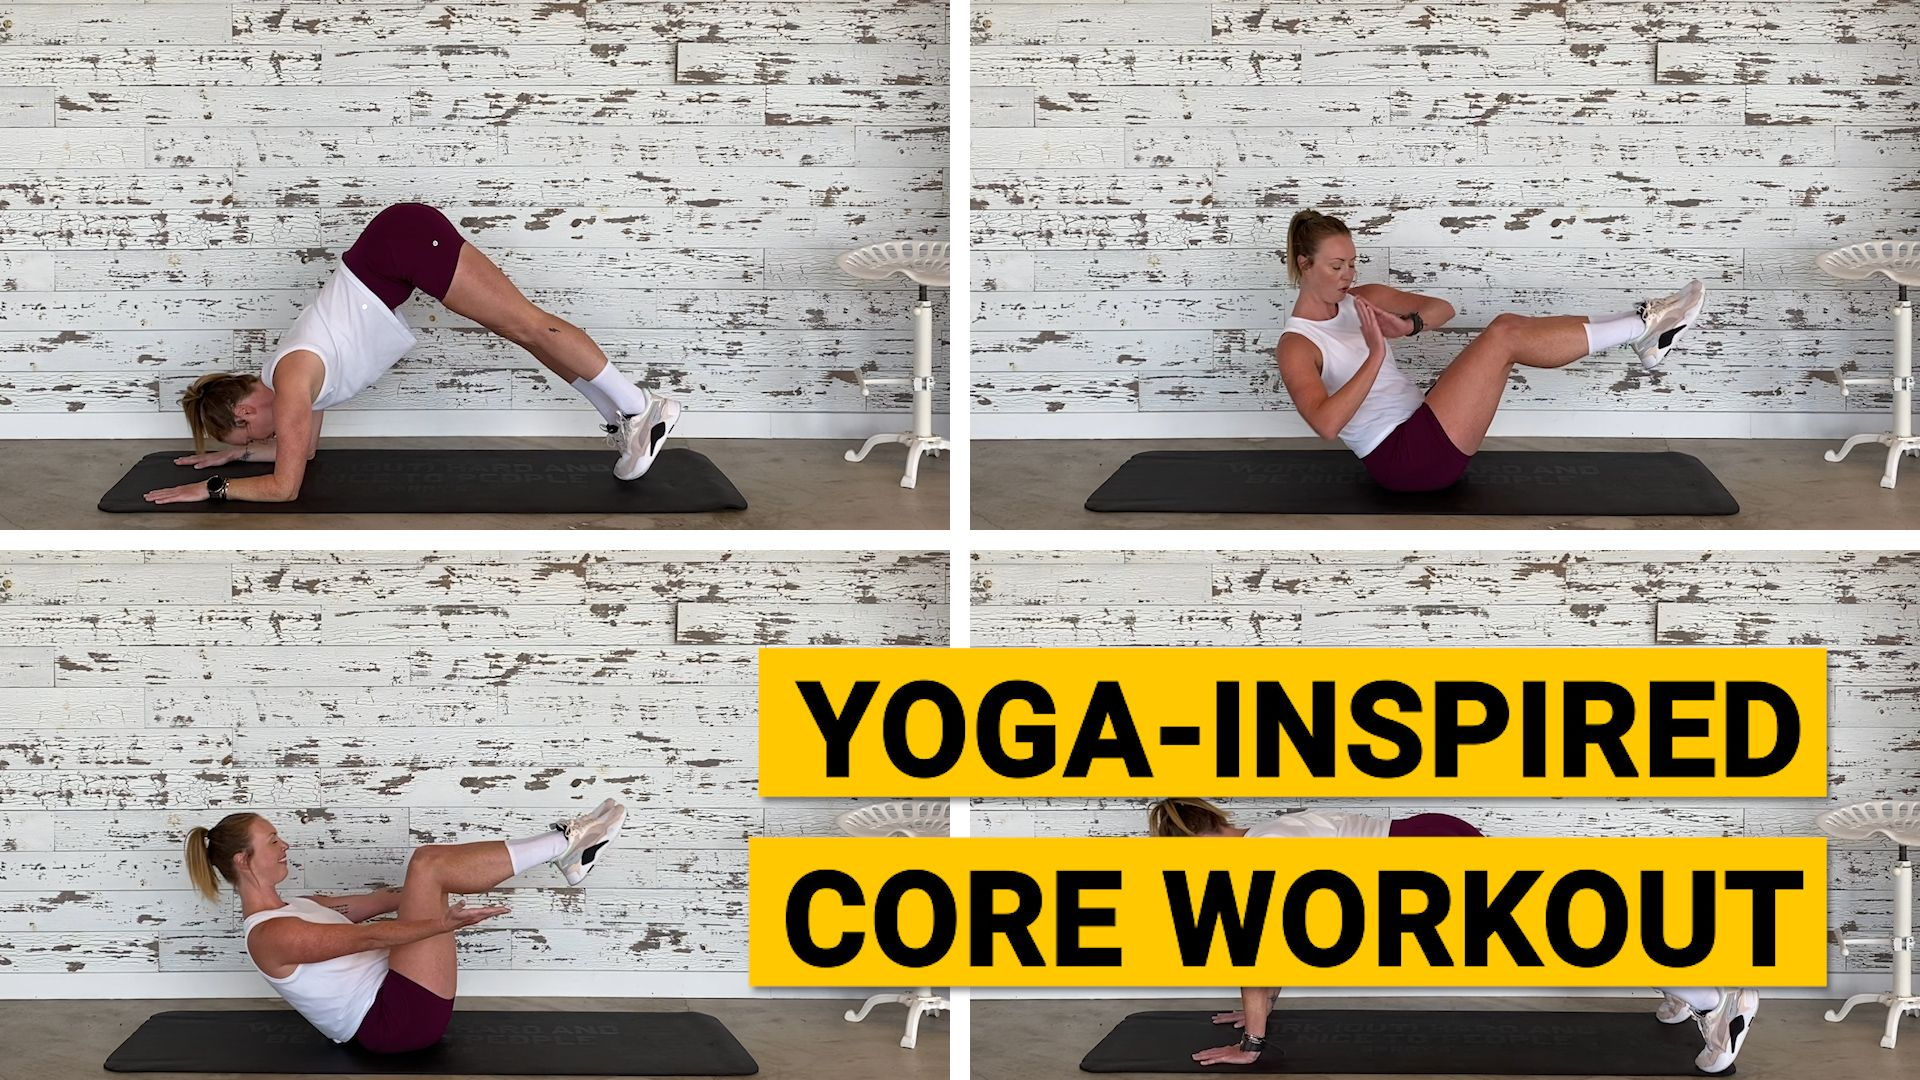 This Yoga Abs Workout (Just 5 Moves!) Will Build Flexibility and Mobility